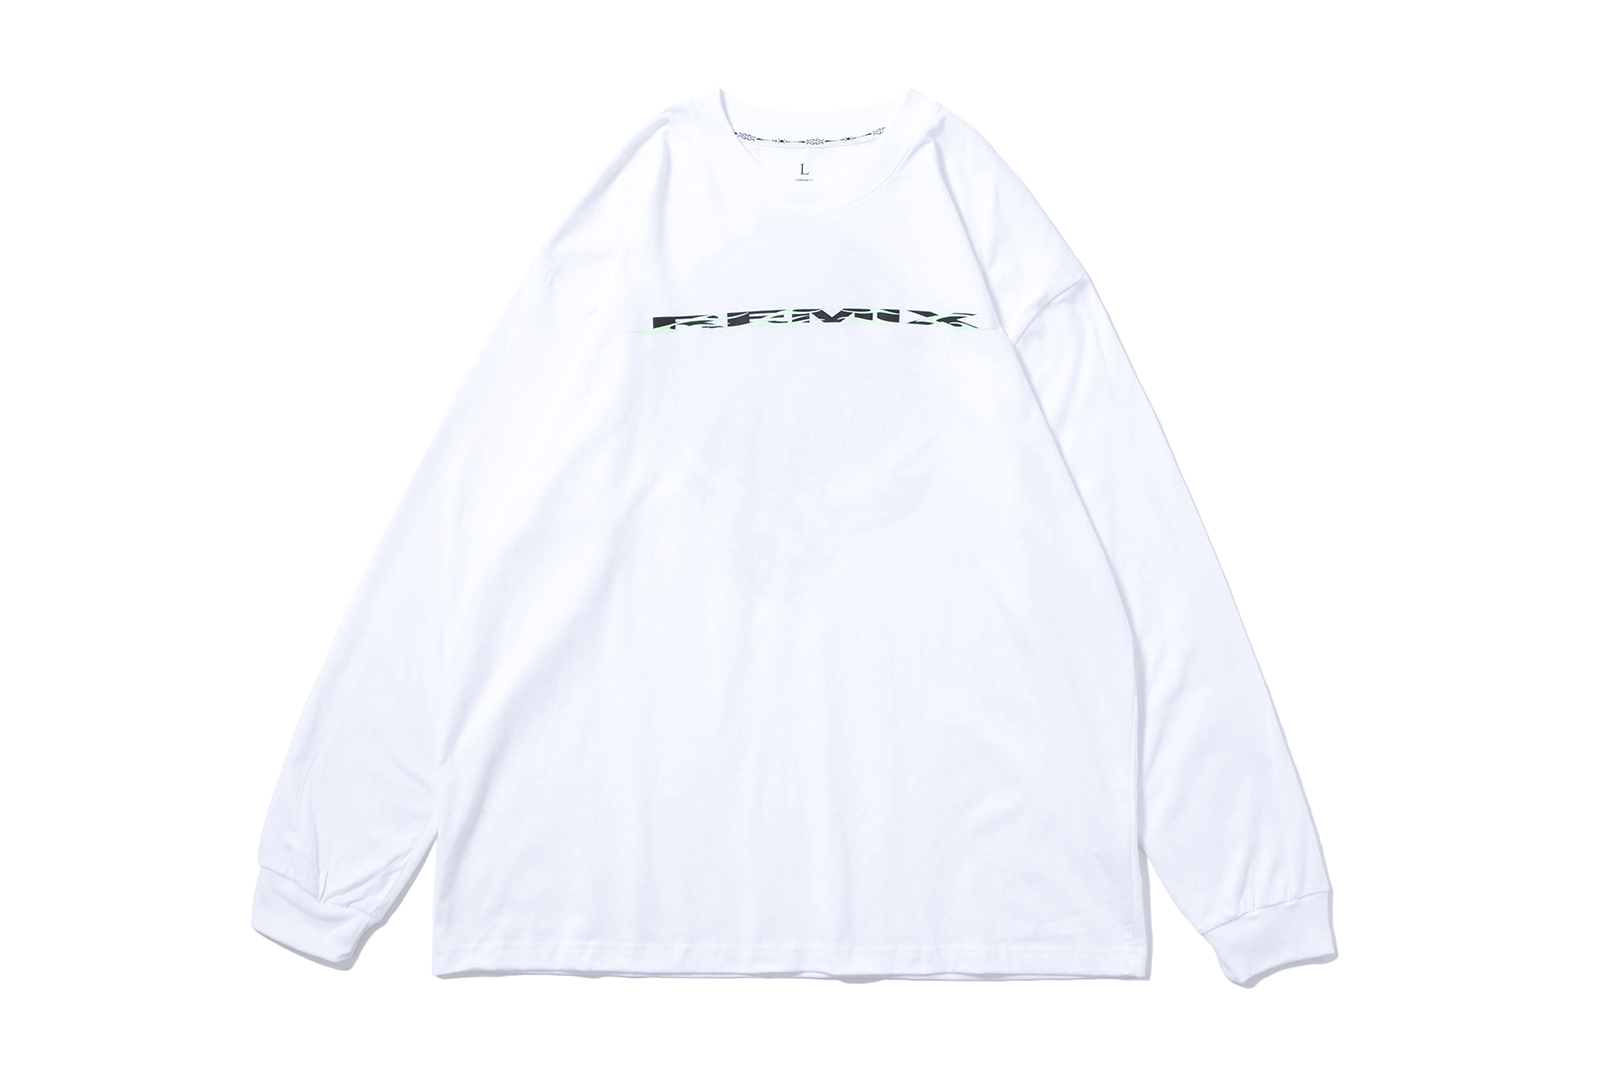 remix-l-fe3c_official-metal-ball-ls-tee-white_p2